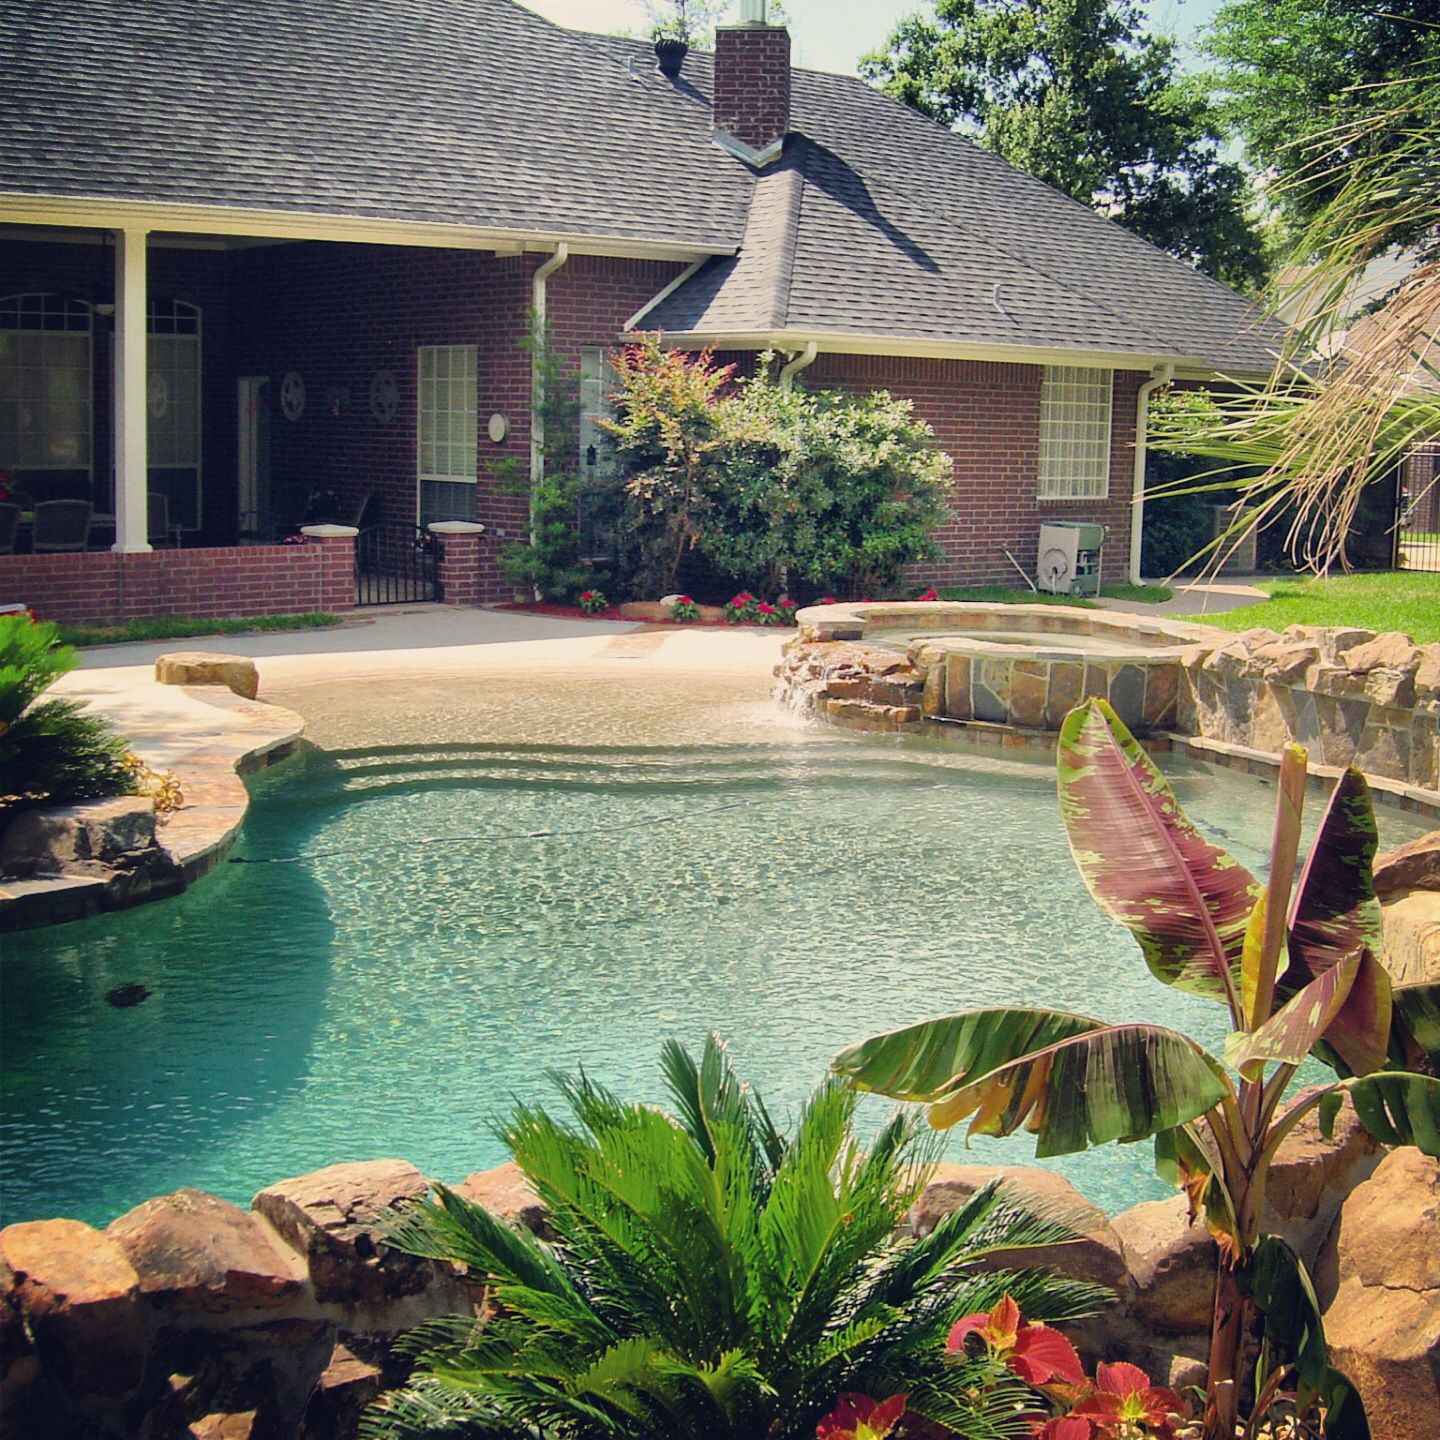 Tropical lagoon style gunite swimming pool with grotto pool cave